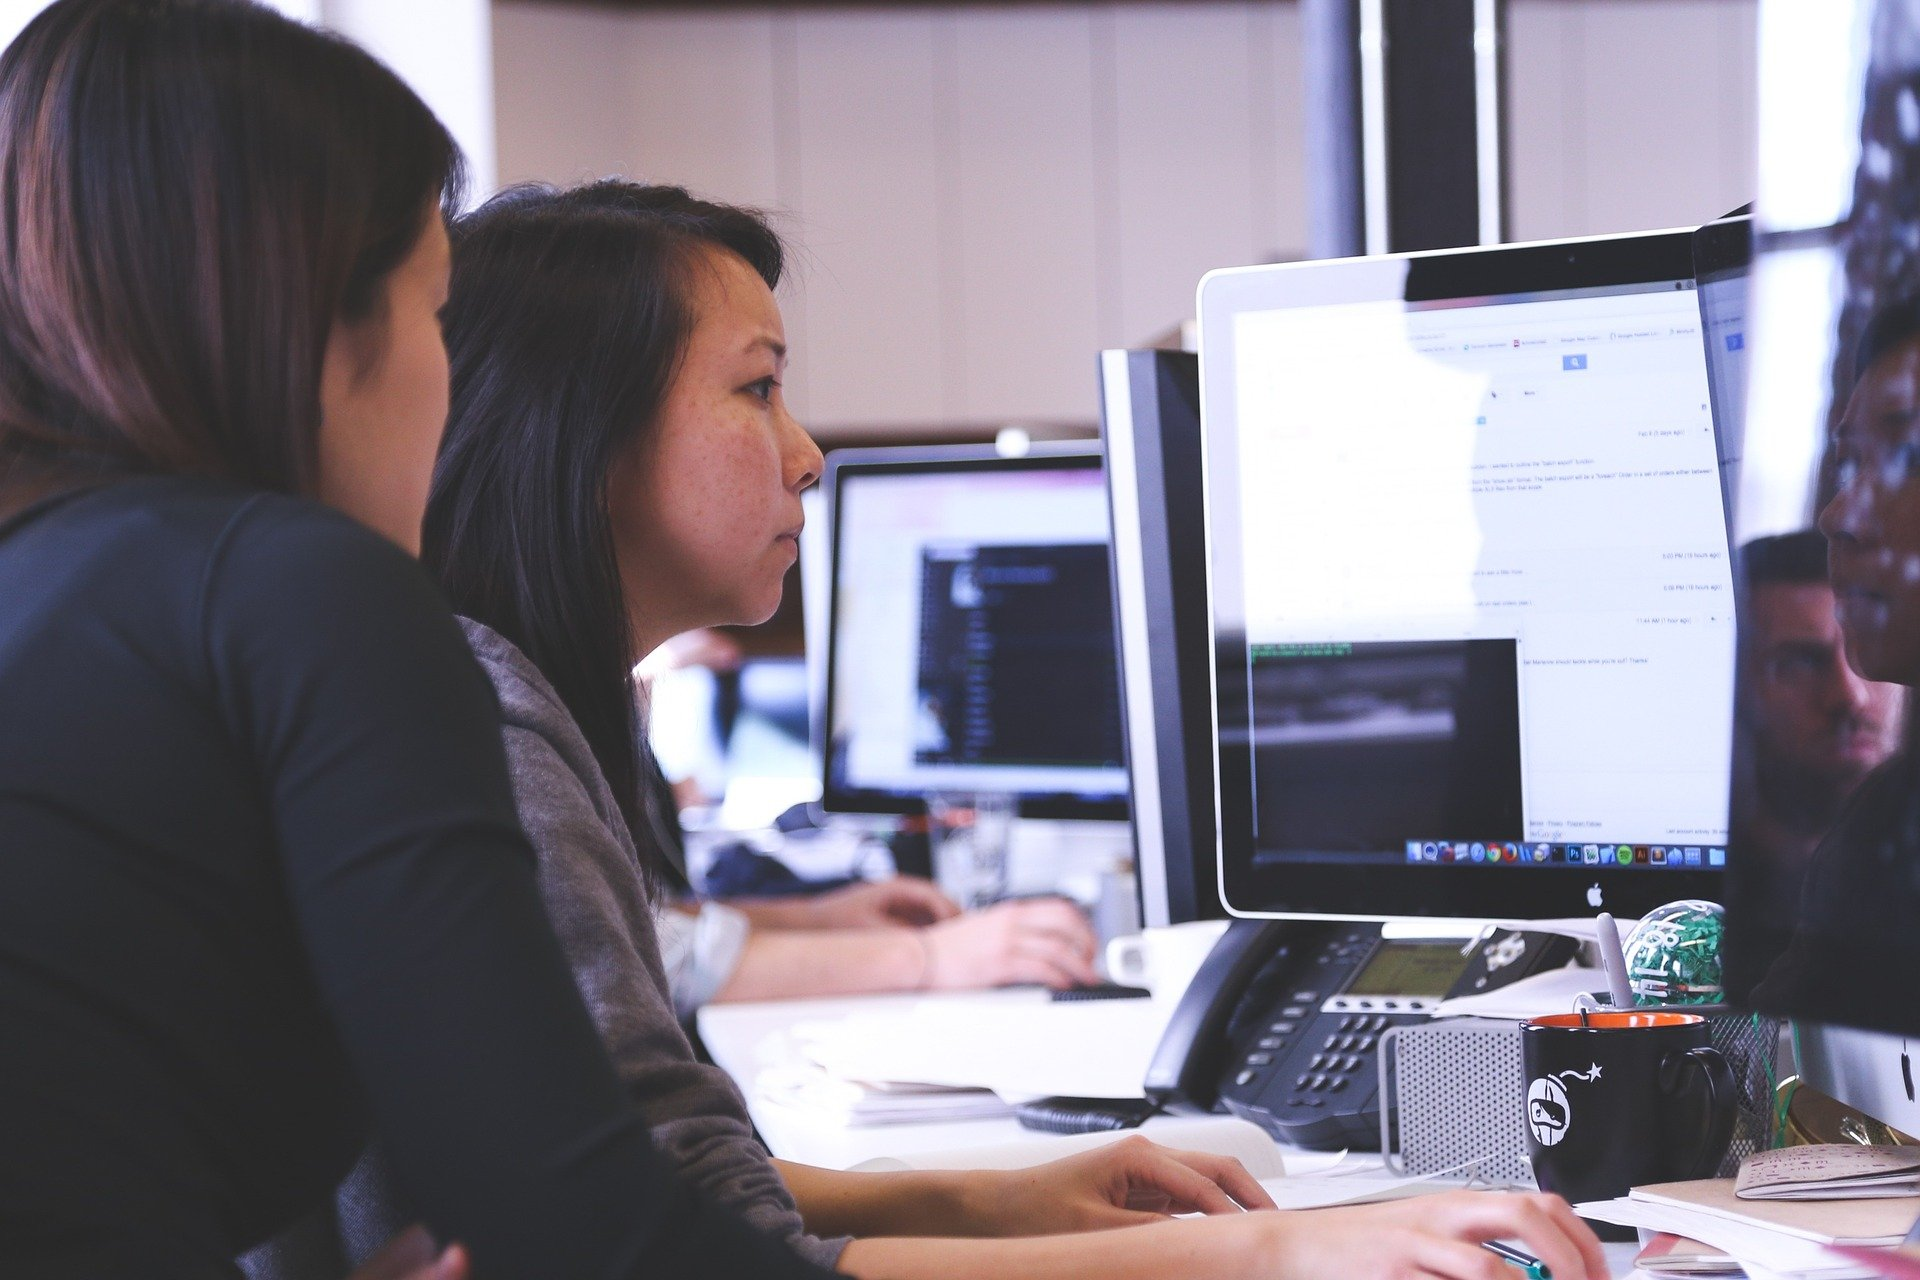 This image shows two women working together in front of a computer